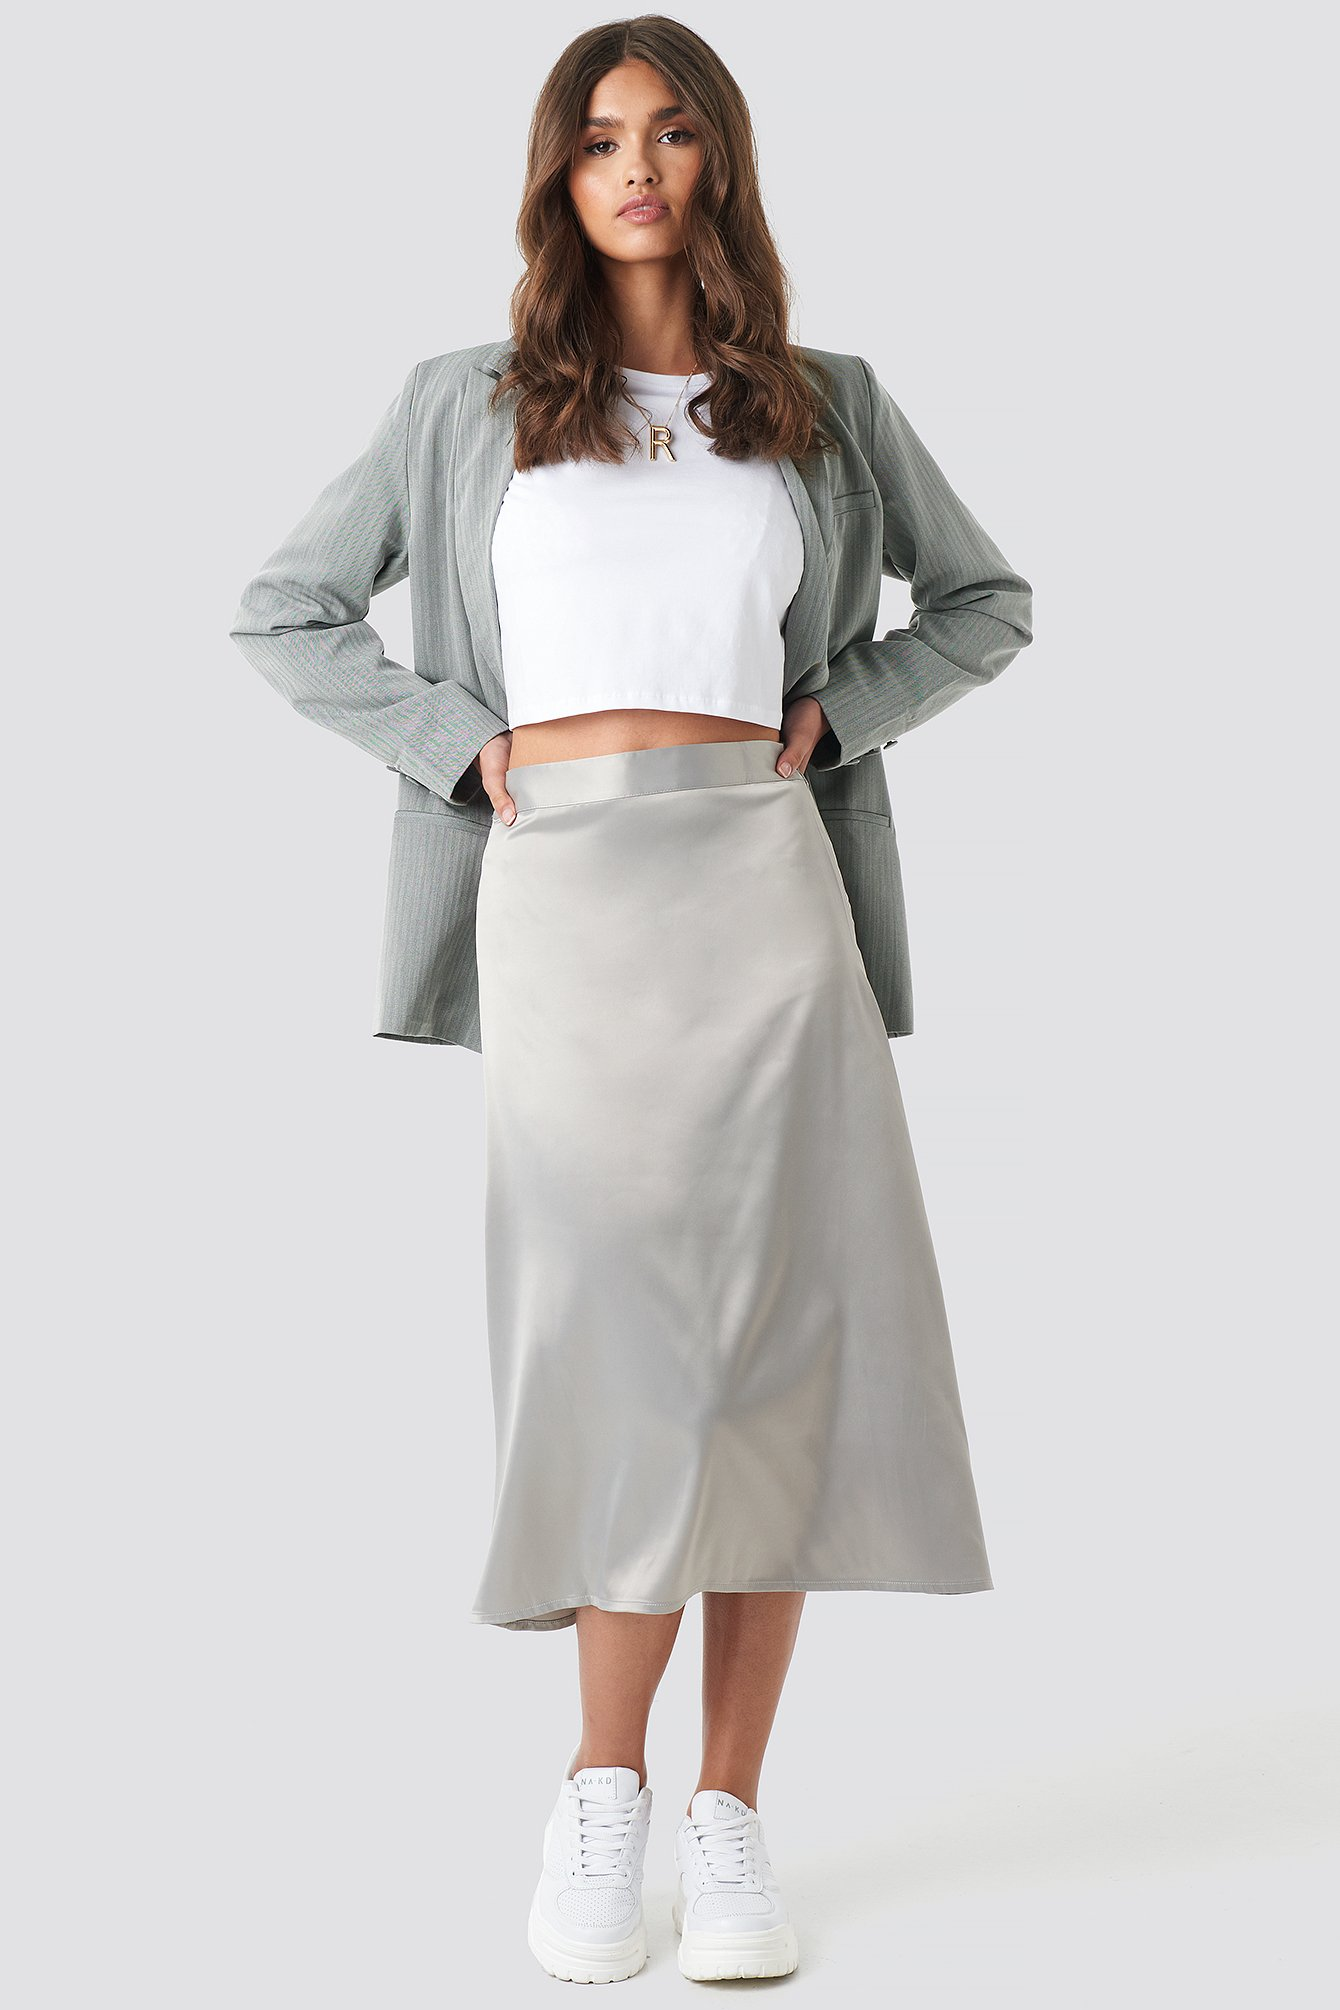 na-kd party -  Bias Cut Satin Midi Skirt - Grey,Silver